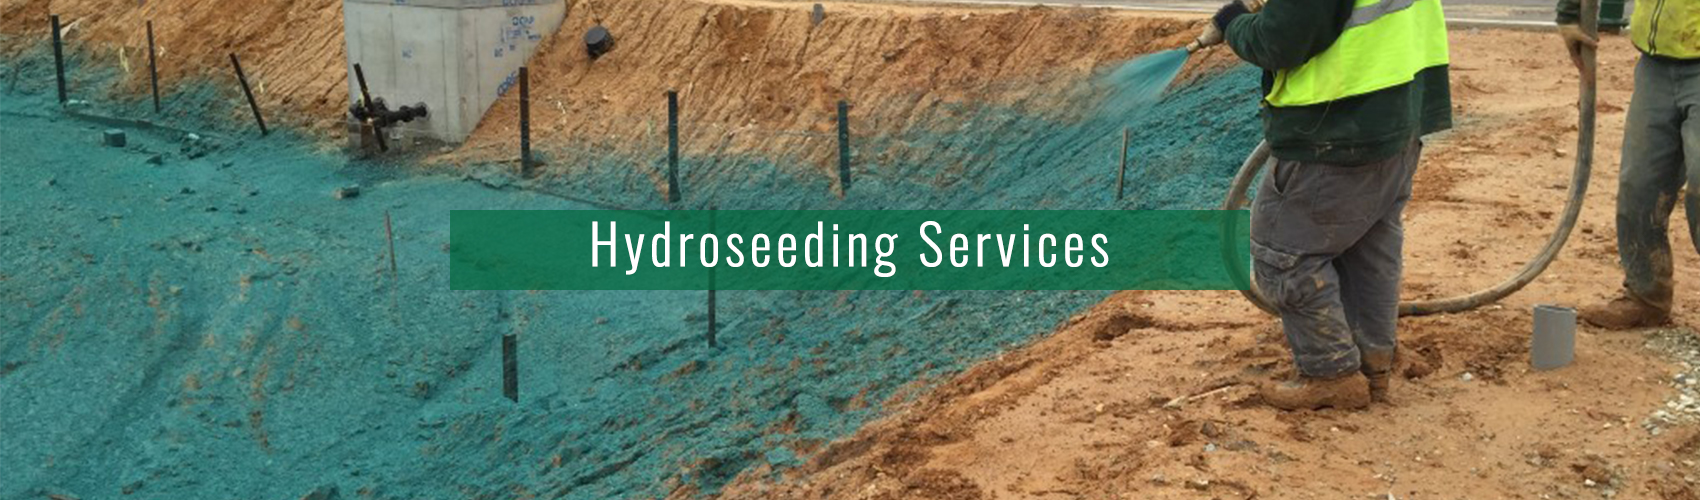 Hydroseeding Services in MD, VA, DC from Complete Landscaping